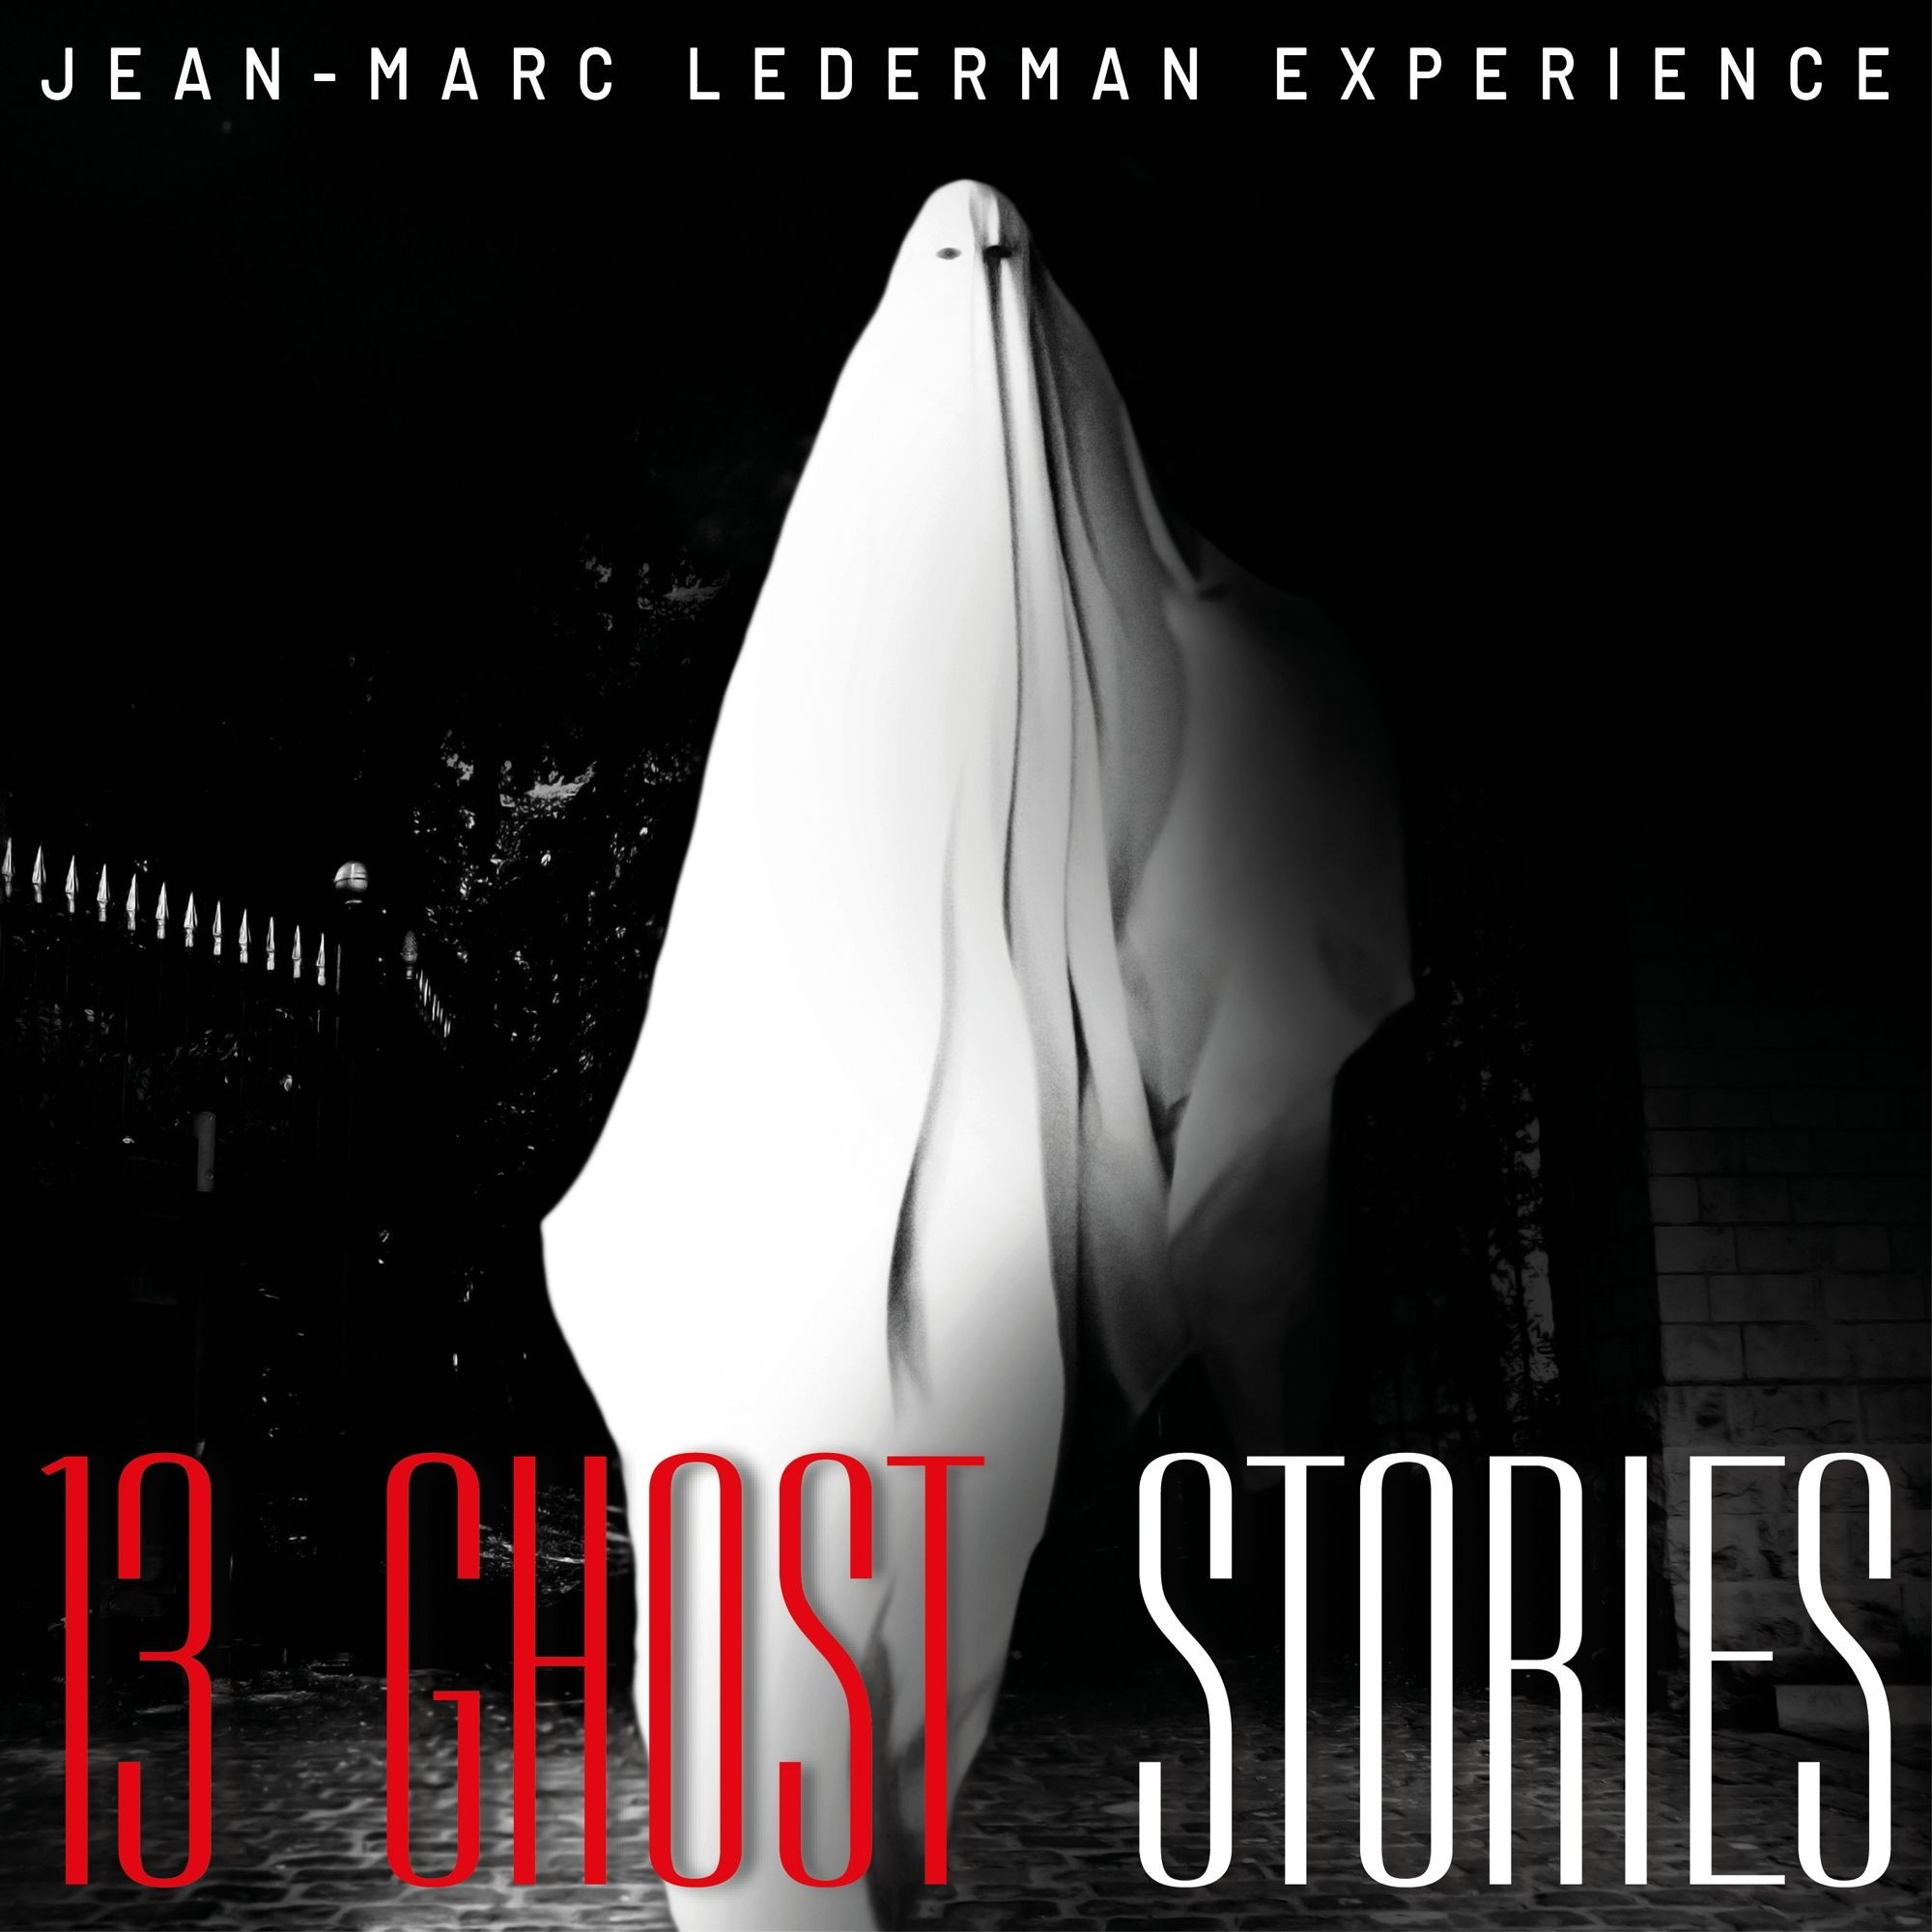 Jean-Marc Lederman Experience - 13 Ghost Stories (Limited Edition) - 2CD Book